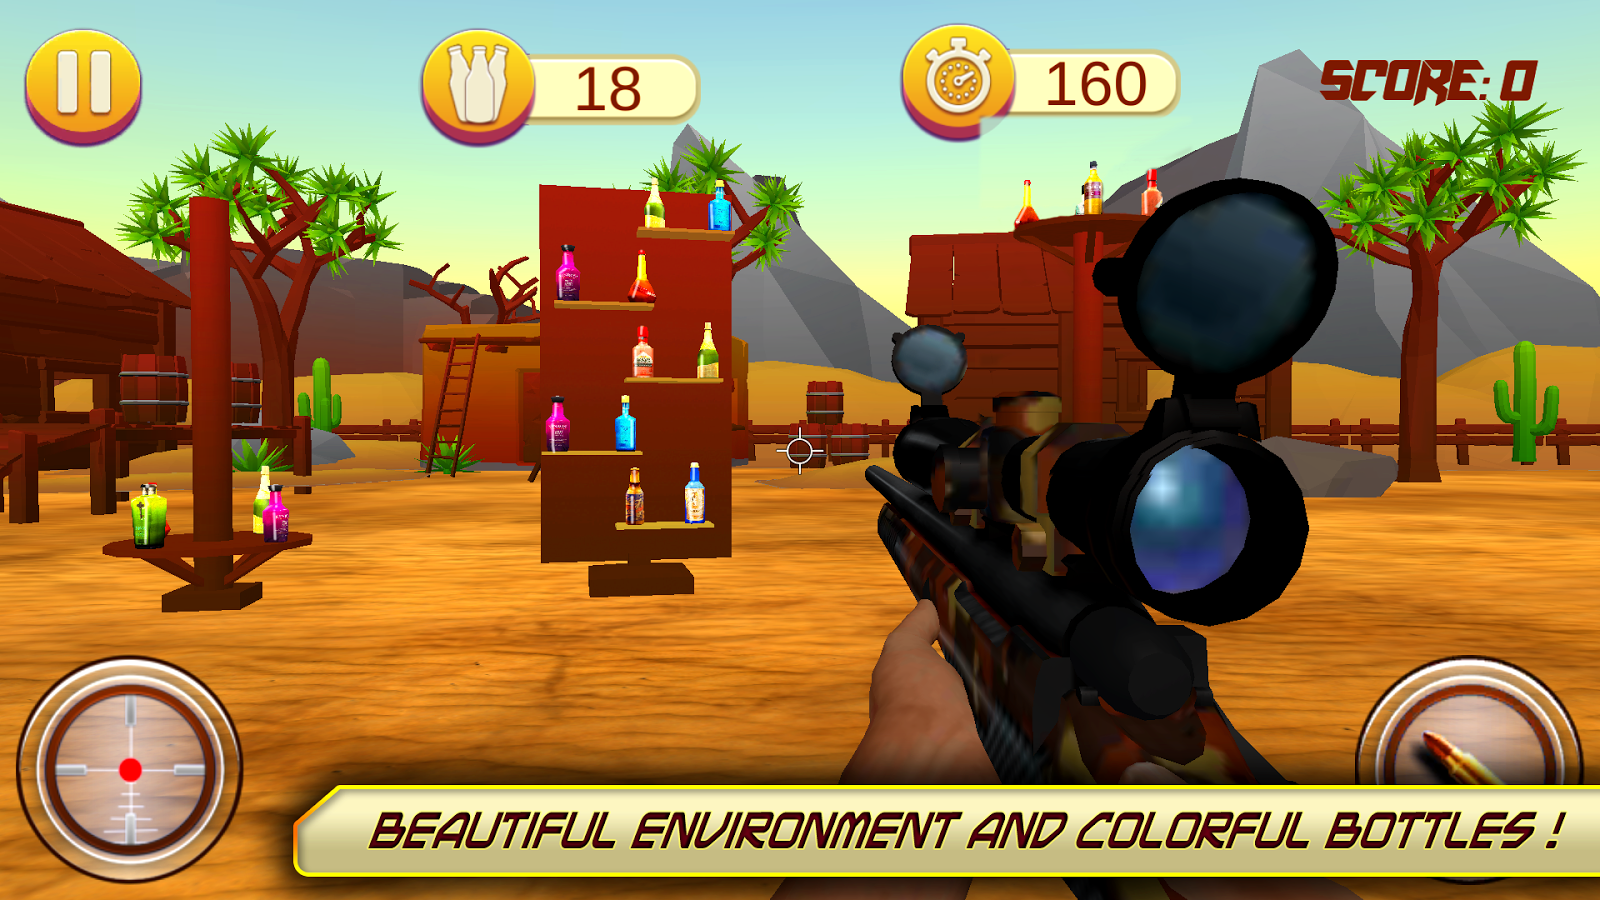 Flasche Shooting Expert - Sniper Shooting Spiele android spiele download